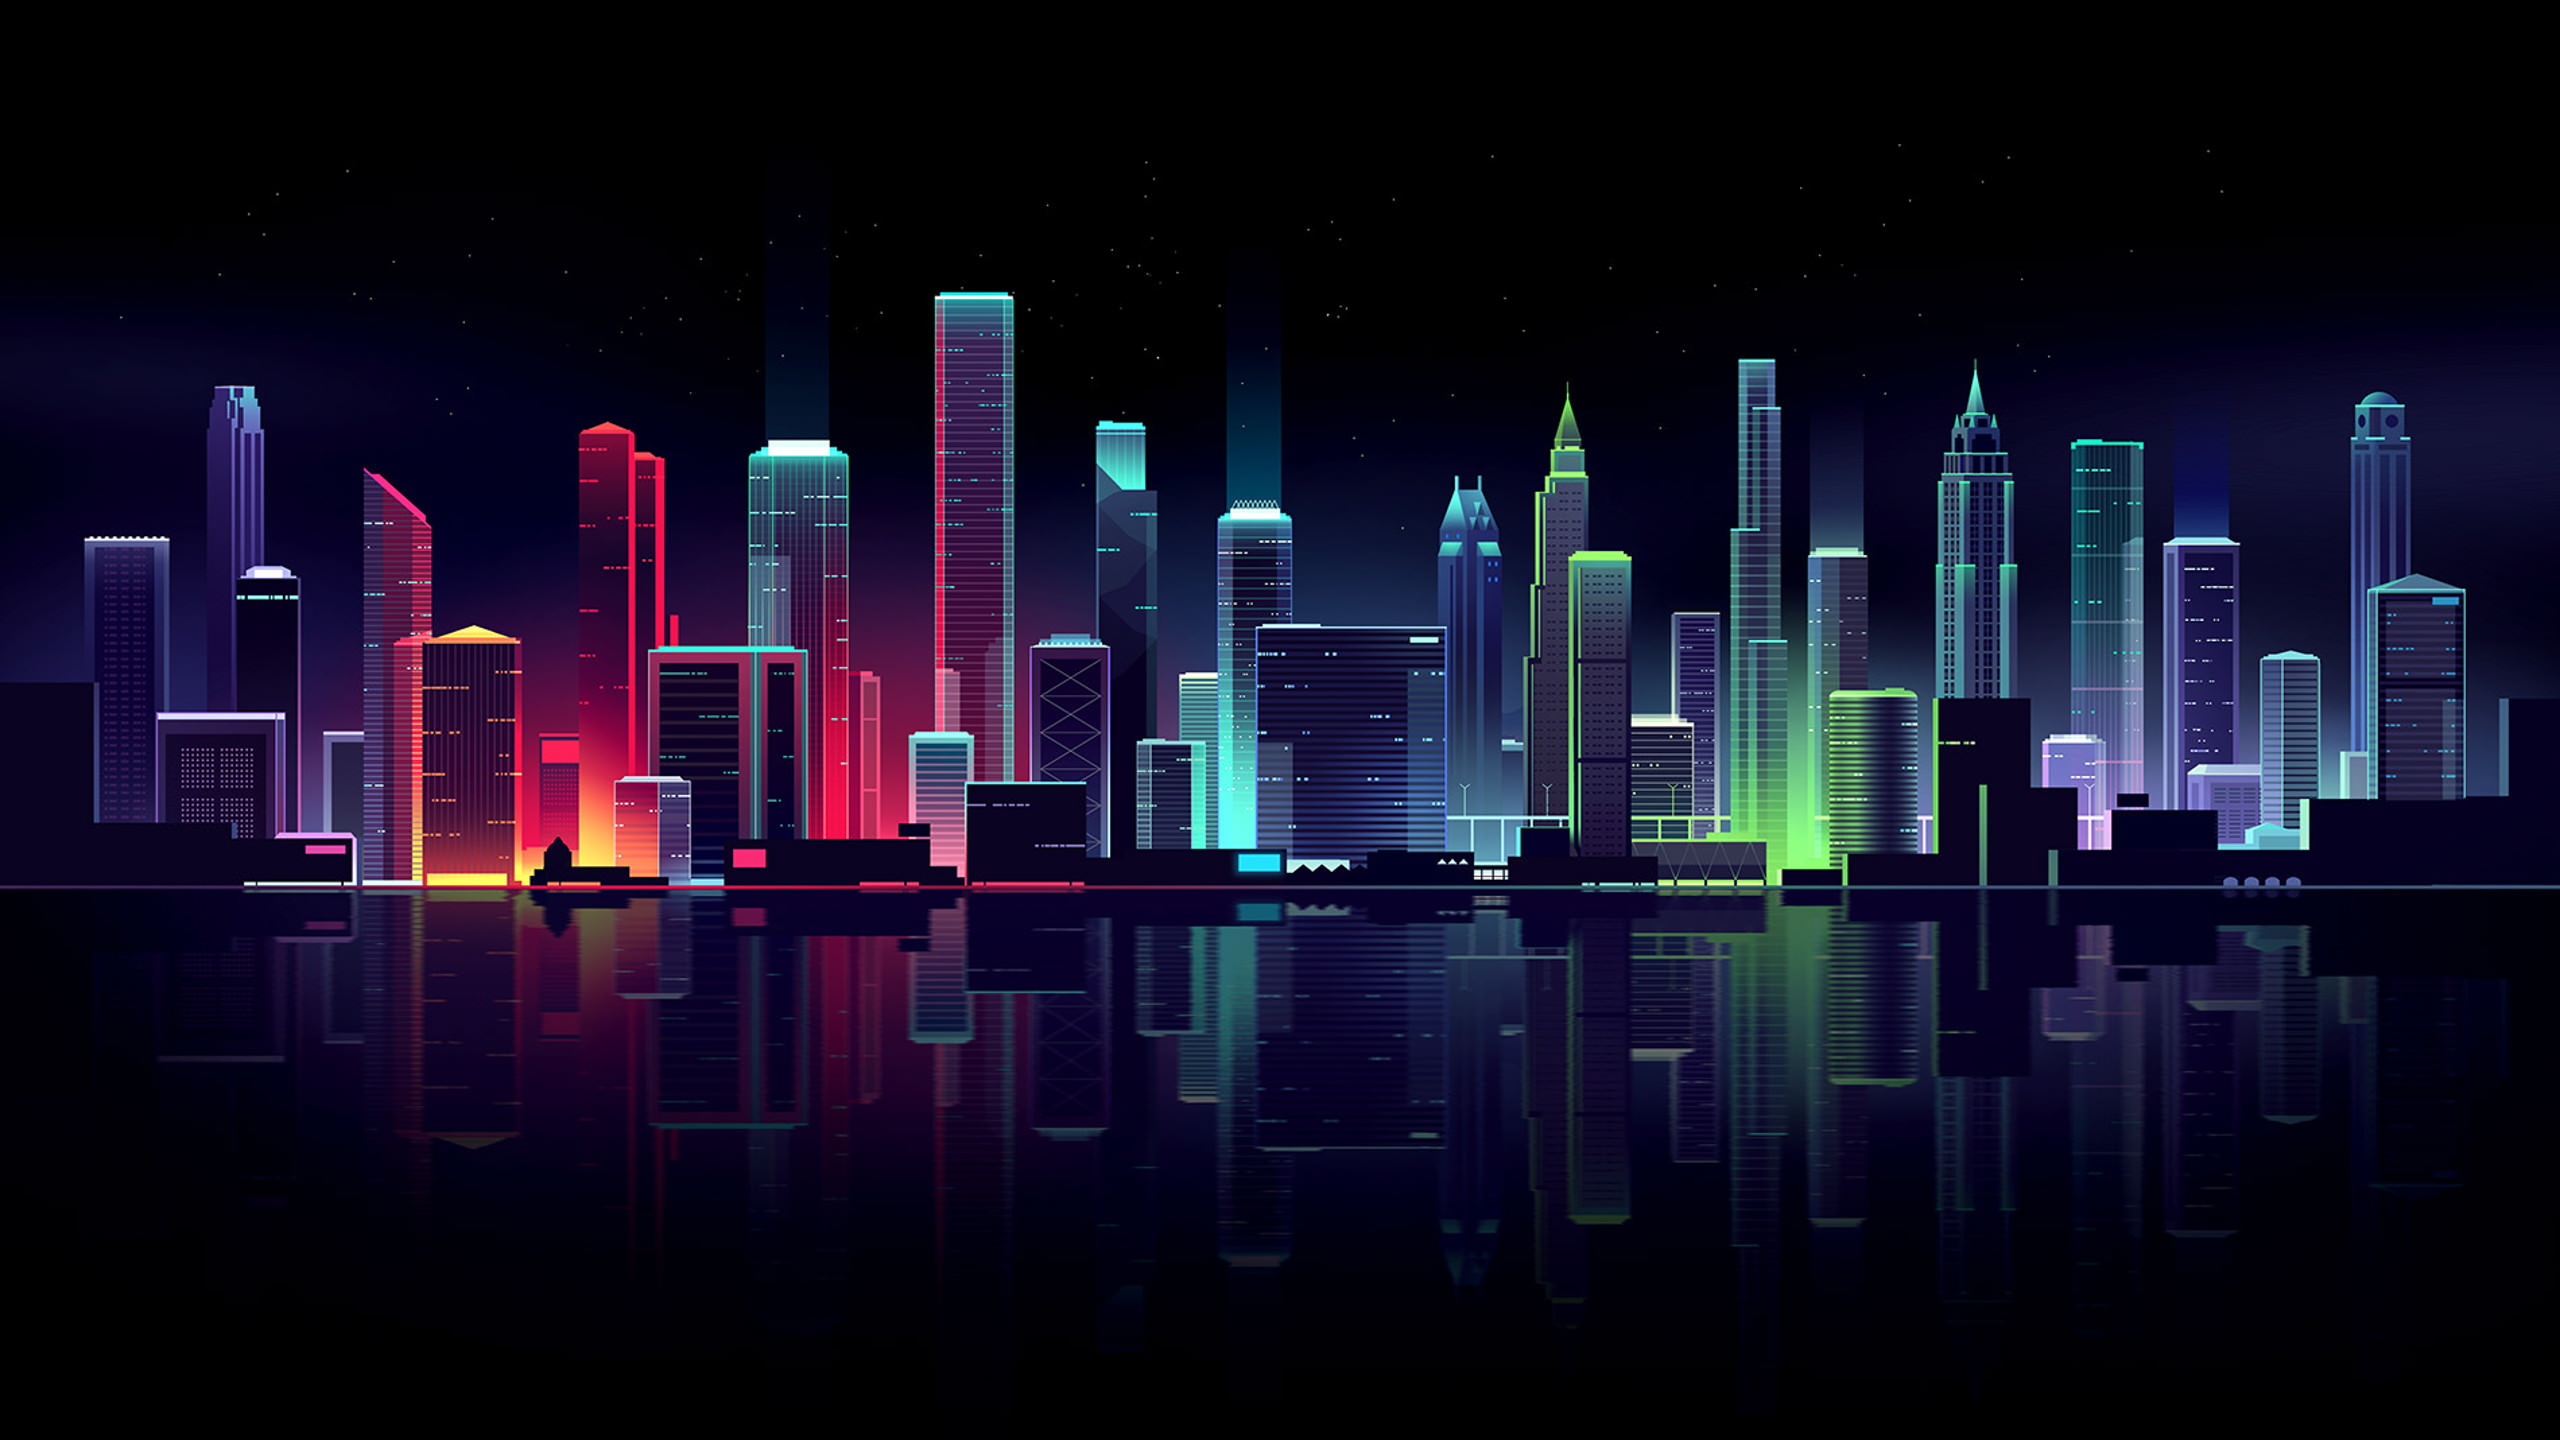 Neon Cityscape Wallpapers Hd Wallpapers